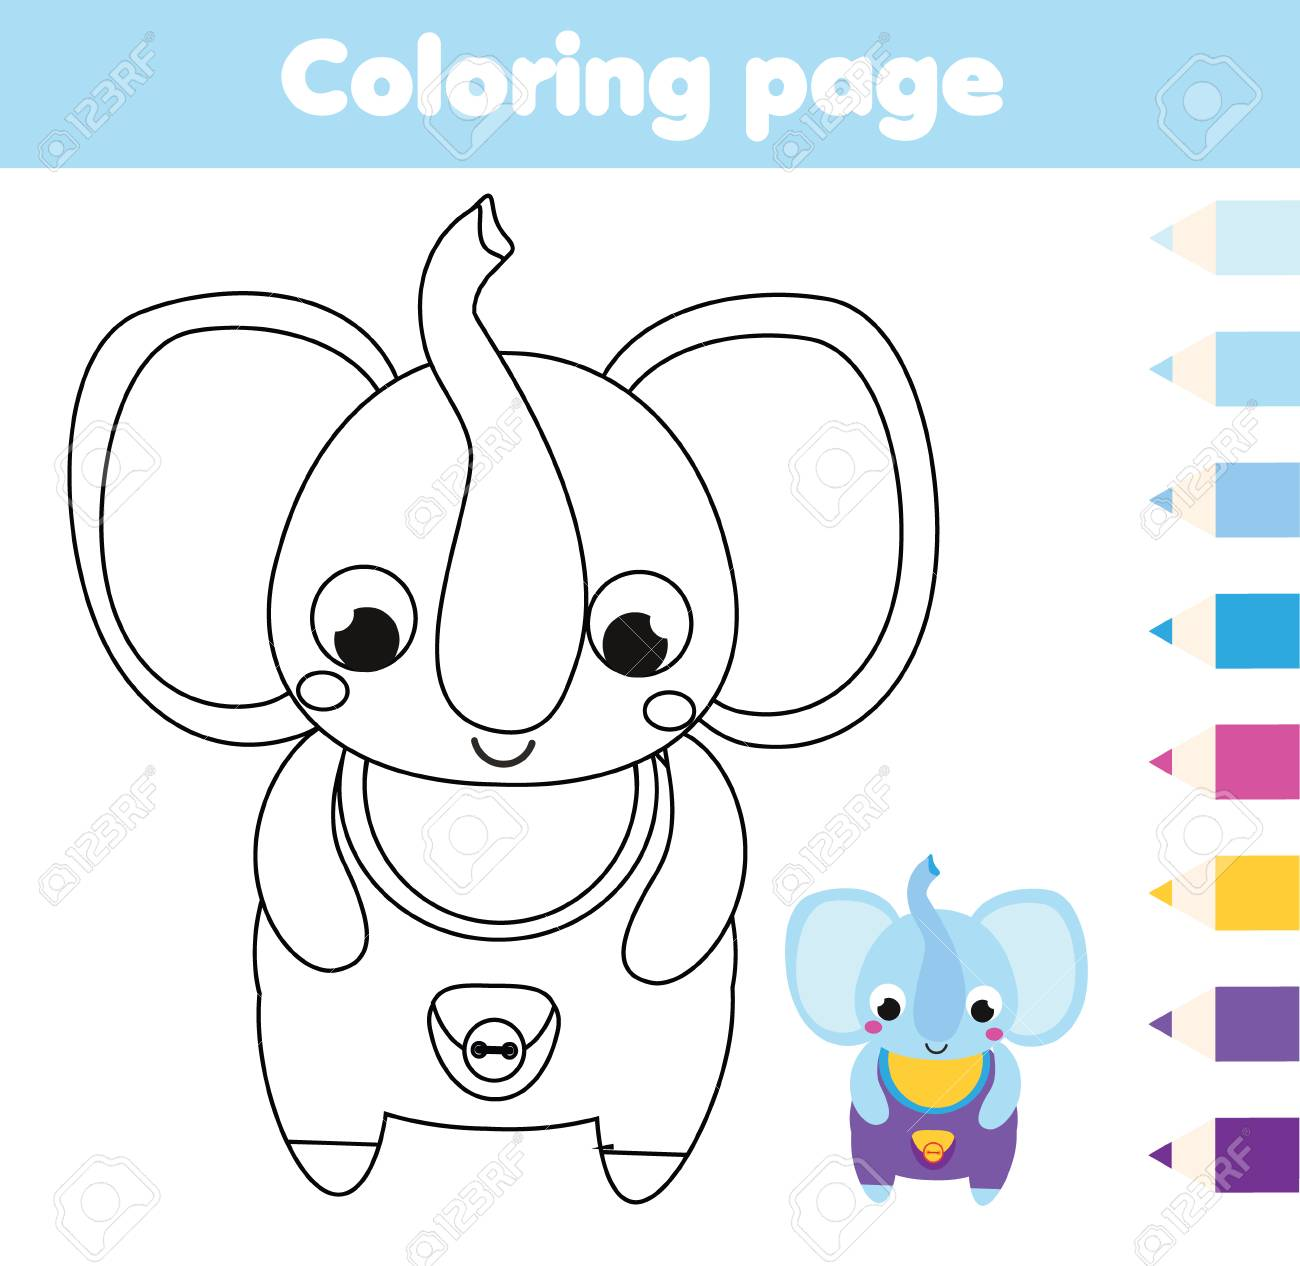 Coloring page with elephant. Drawing kids activity. Printable..